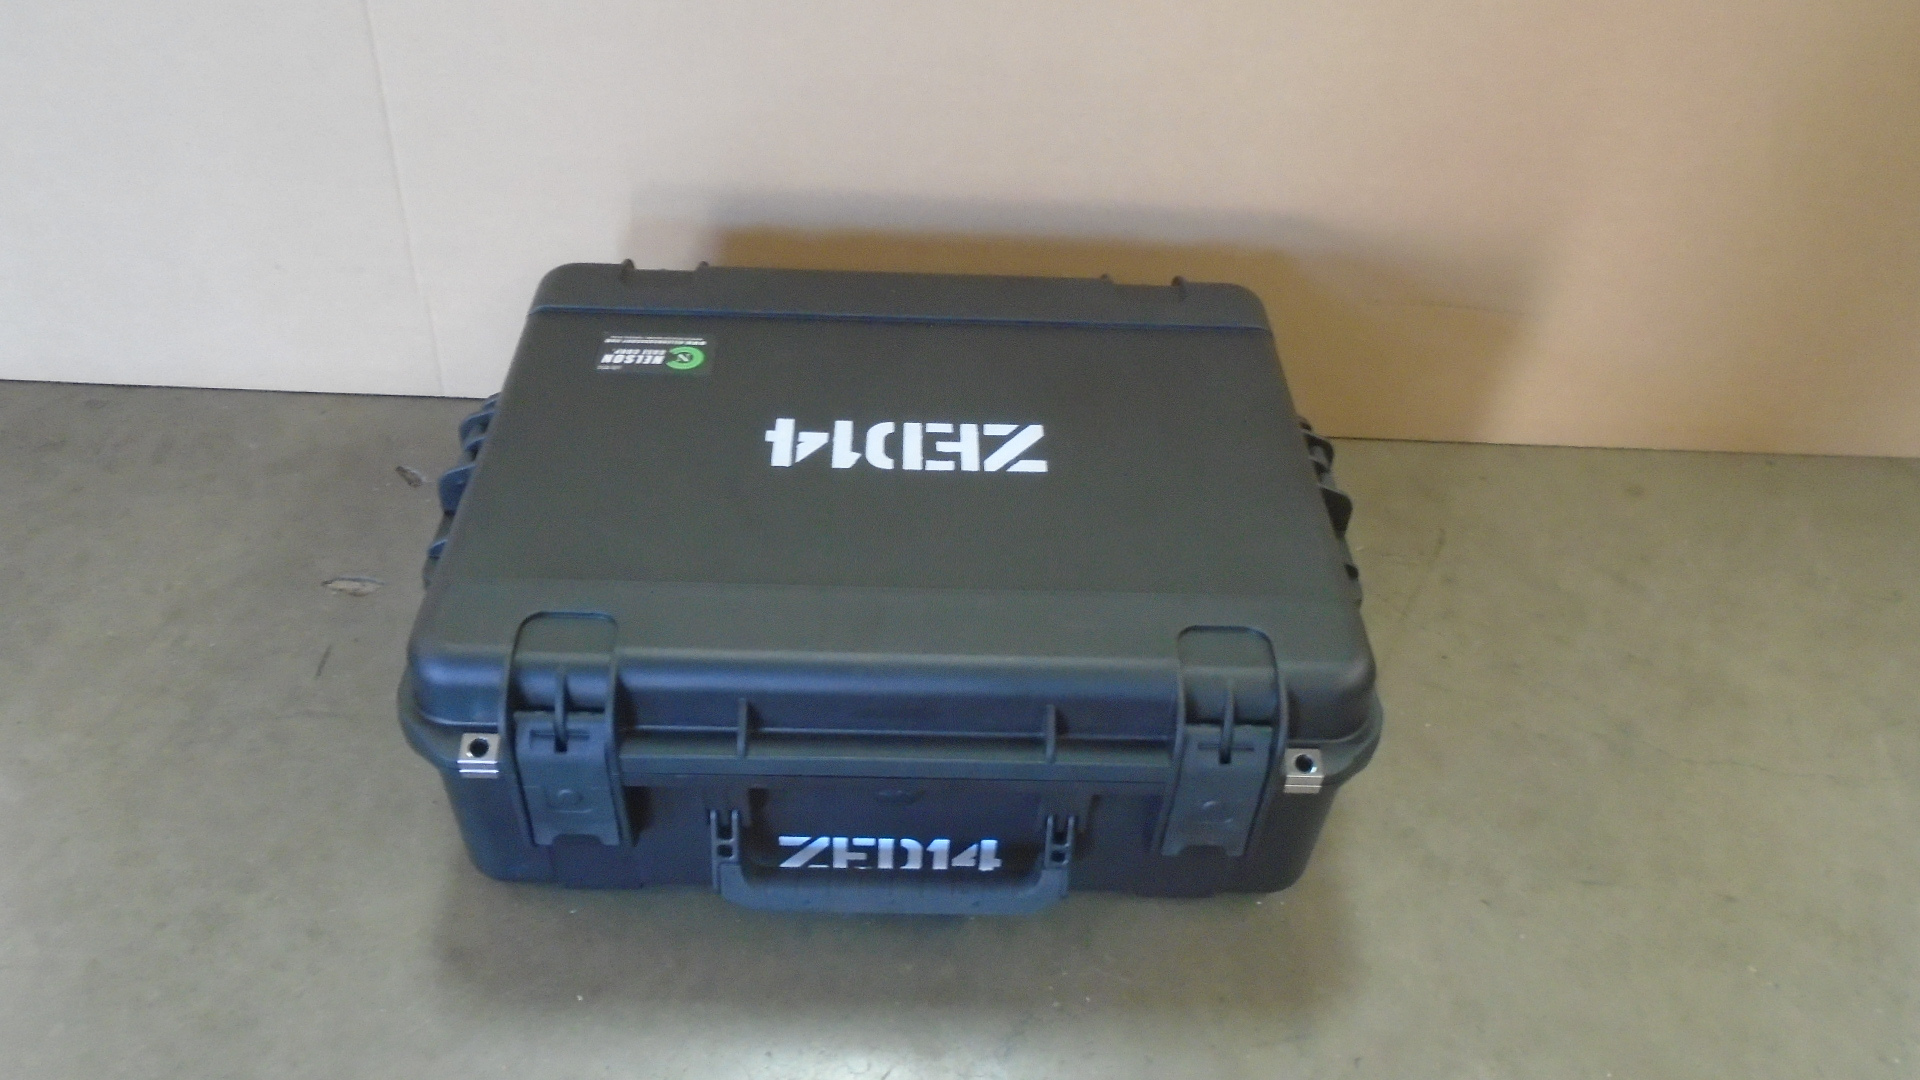 Print # 7767 - SKB 3i-2217-8 Case Retrofitted for Allen Heath ZED-14 Audio Mixer By Nelson Case Corp